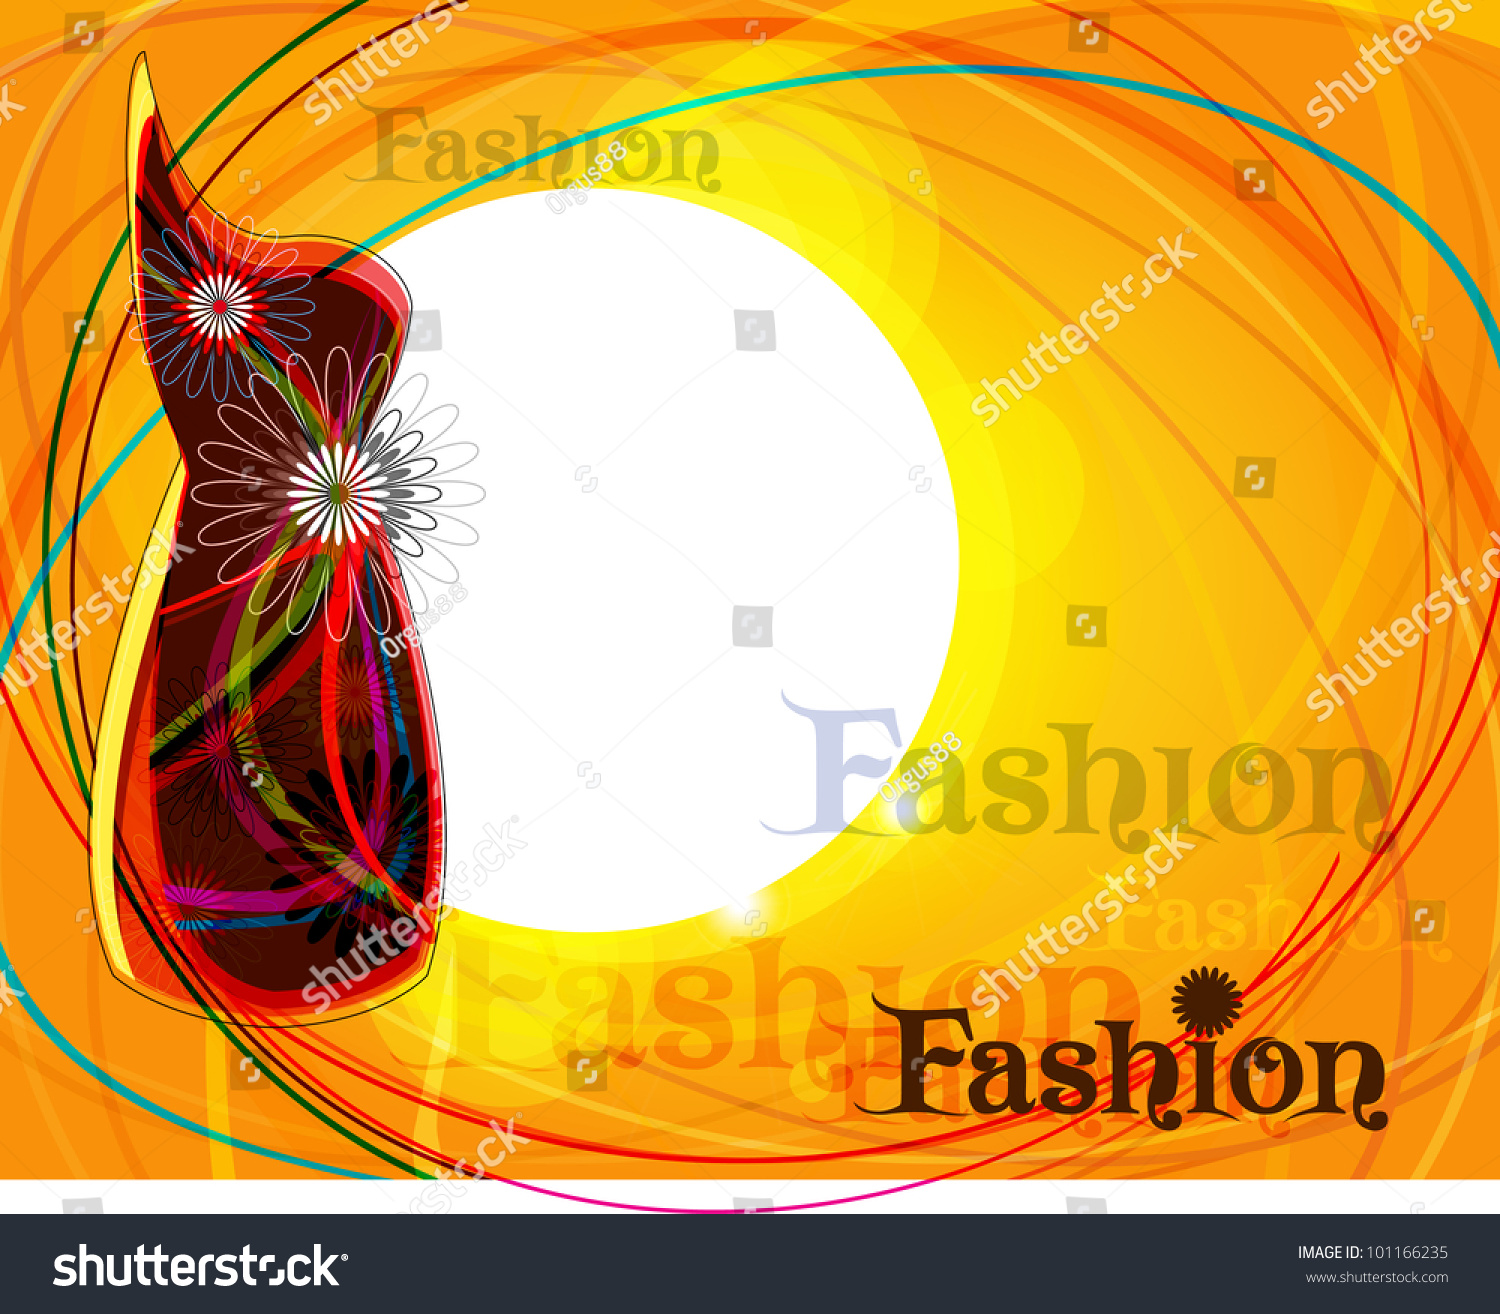 Fashion poster background